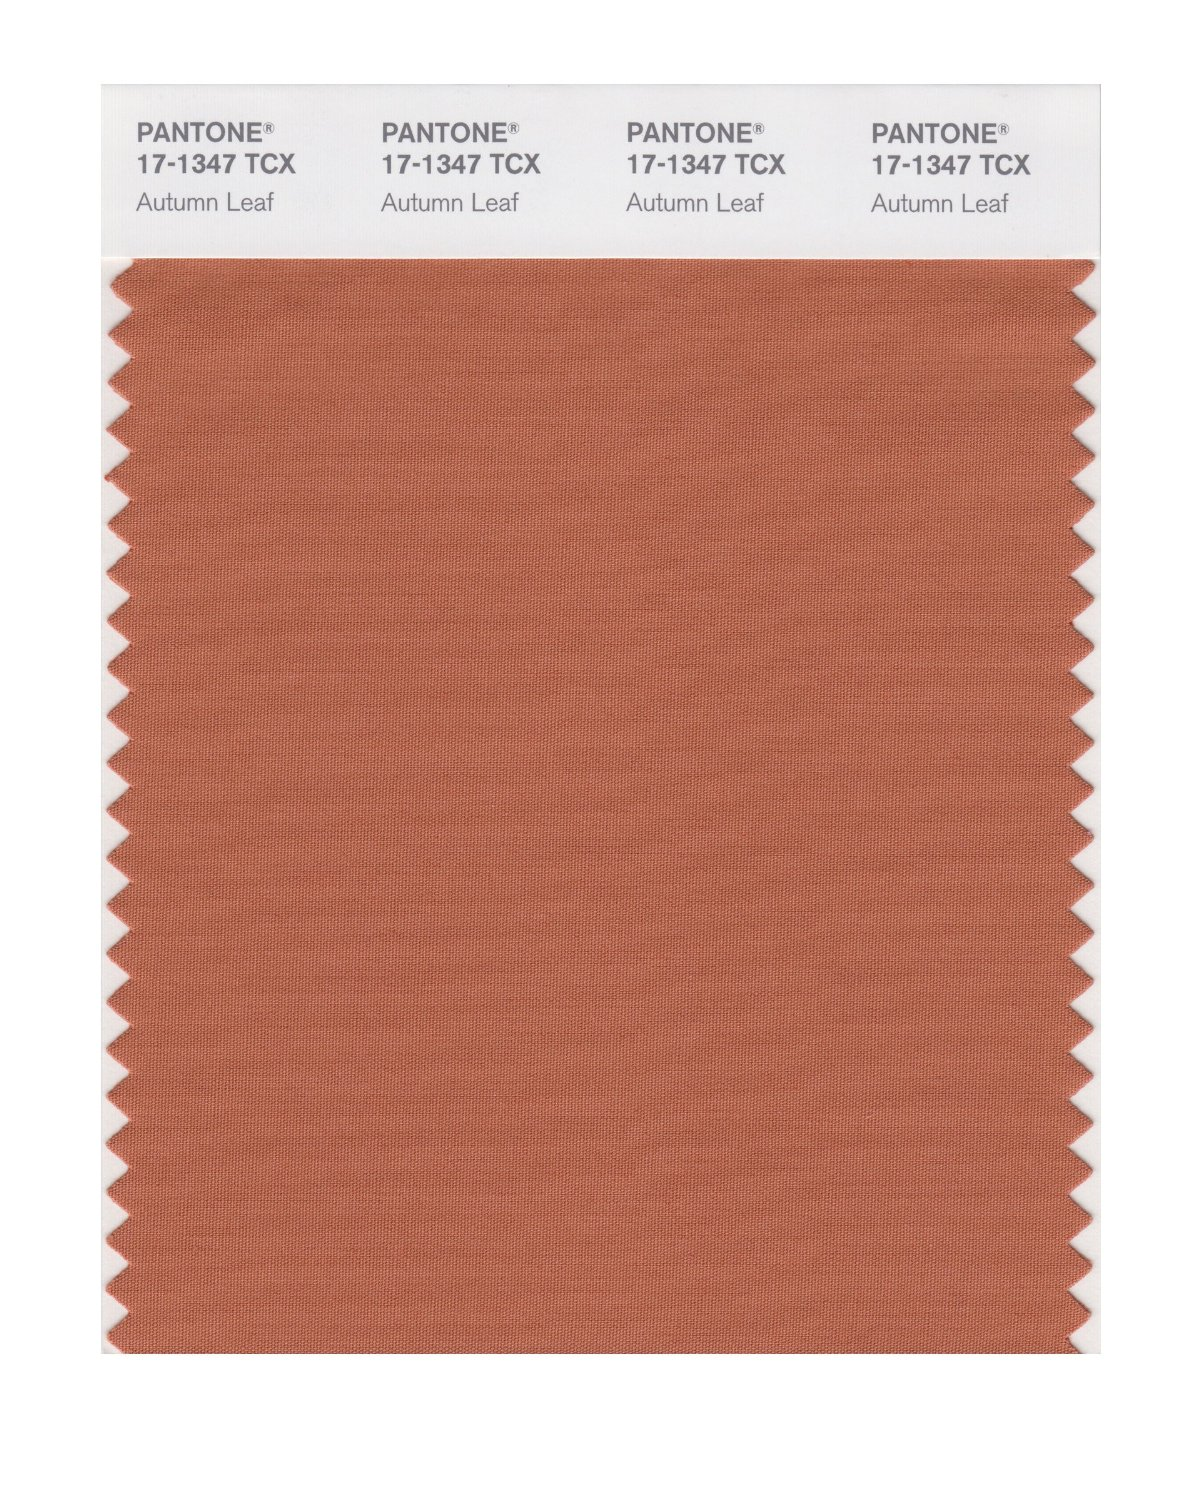 Pantone Smart Swatch 17-1347 Autumn Leaf